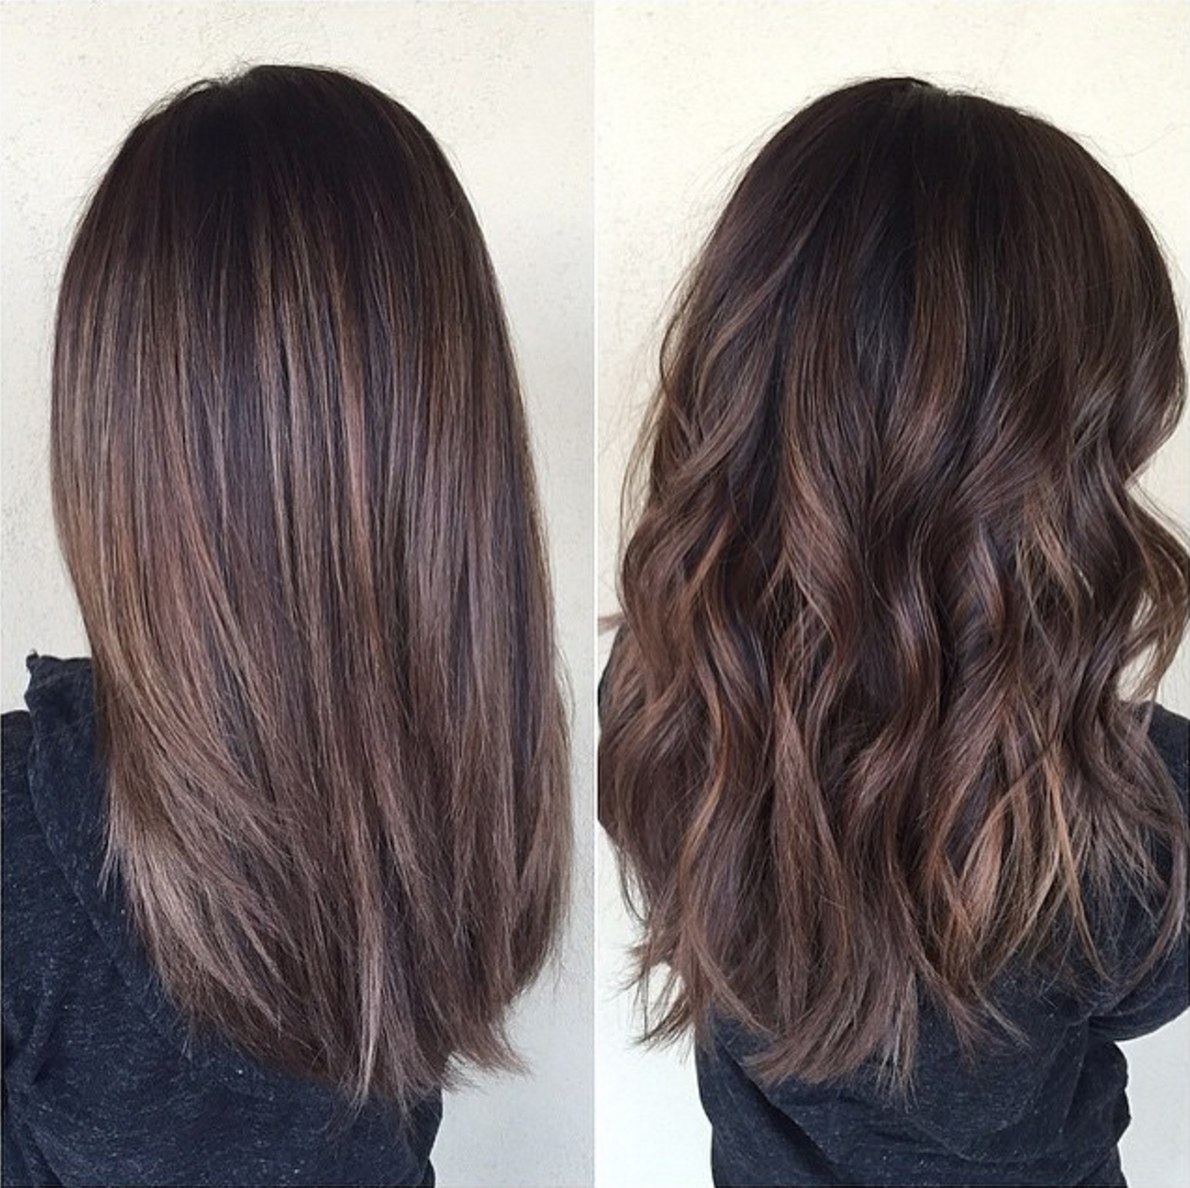 Cool brown balayage hairstyle